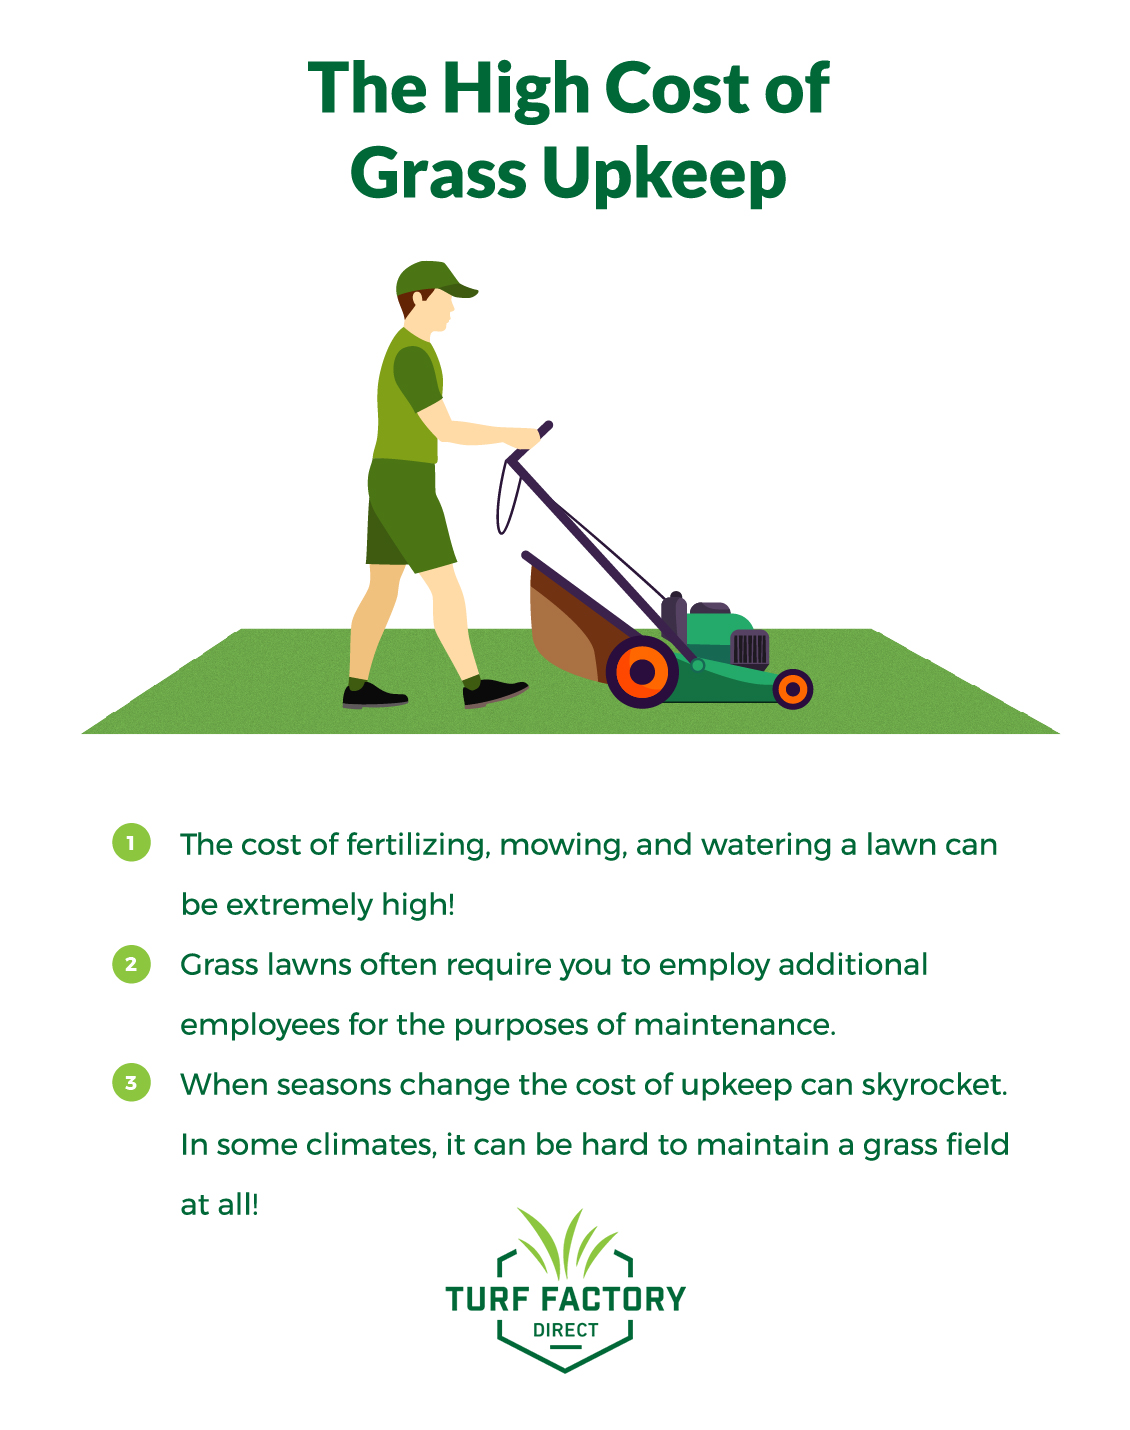 Grass can be extremely expensive. Watering, fertilizing and mowing a natural grass field can be a huge drain on your financial resources.